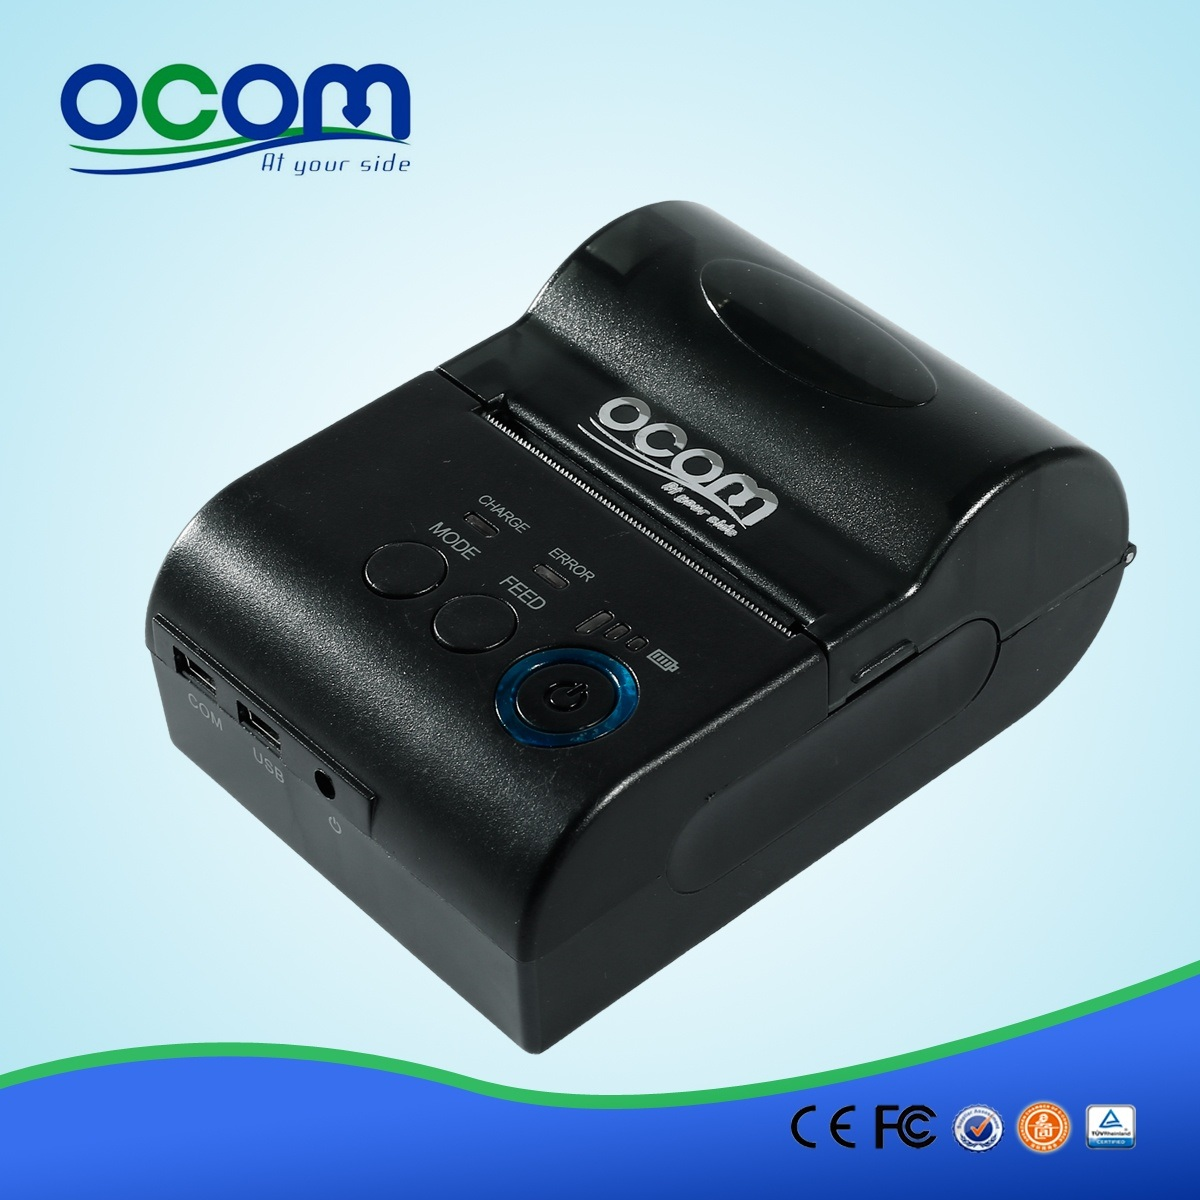 China Made Android Sdk Supplied Mobile Bluetooth Receipt Printer (OCPP-M03)